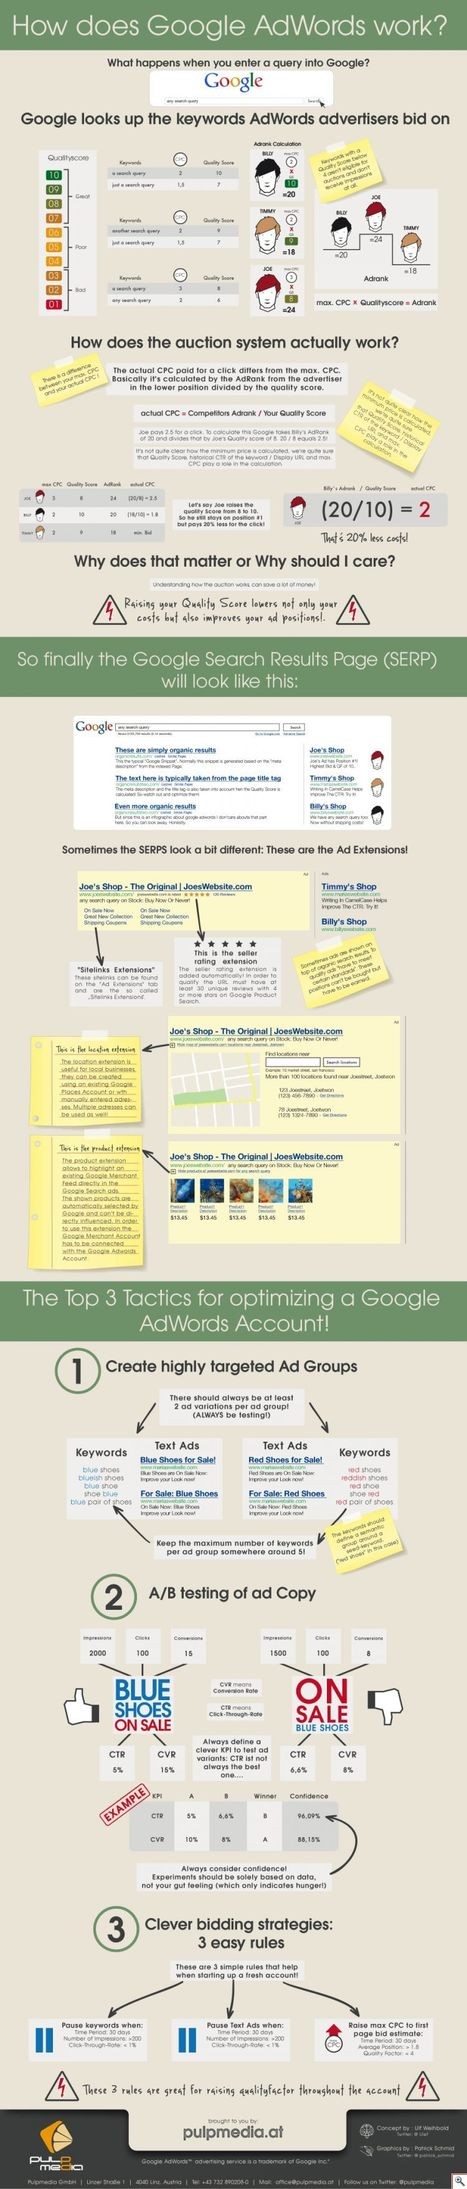 [Infographie] Comment fonctionne Google Adwords ? | Time to Learn | Scoop.it